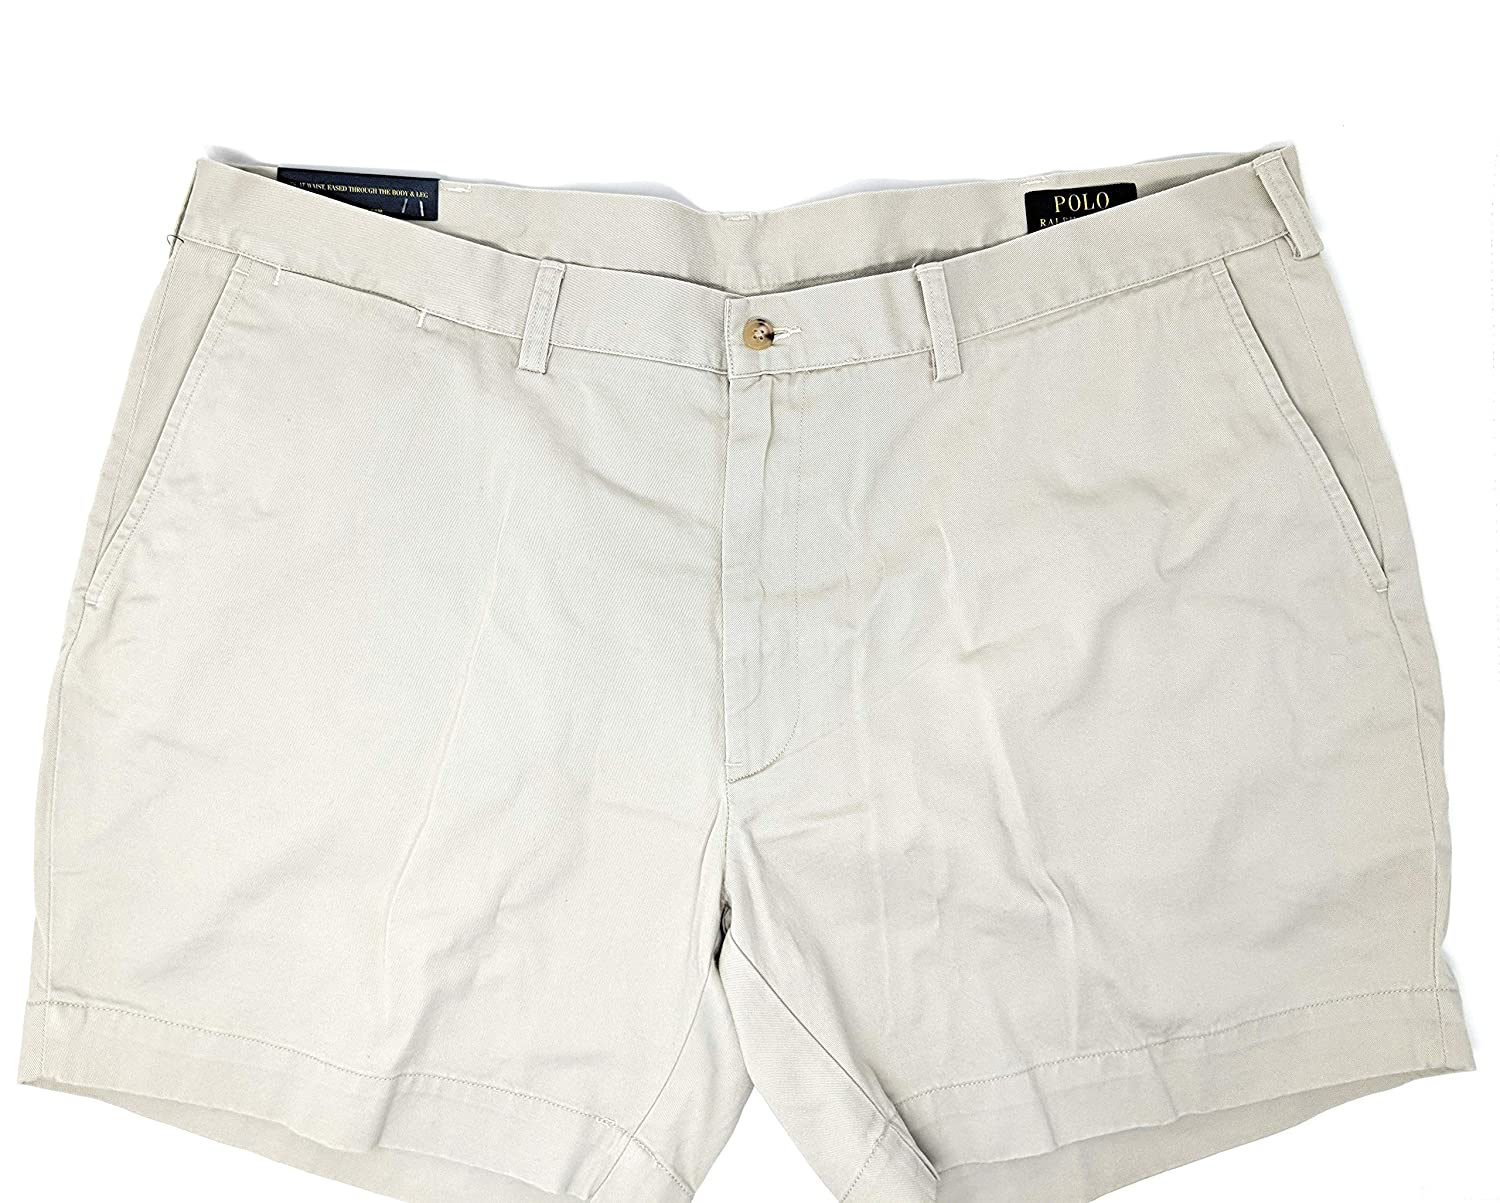 Polo Ralph Lauren Mens 6 Inch Flat Front Chino Short